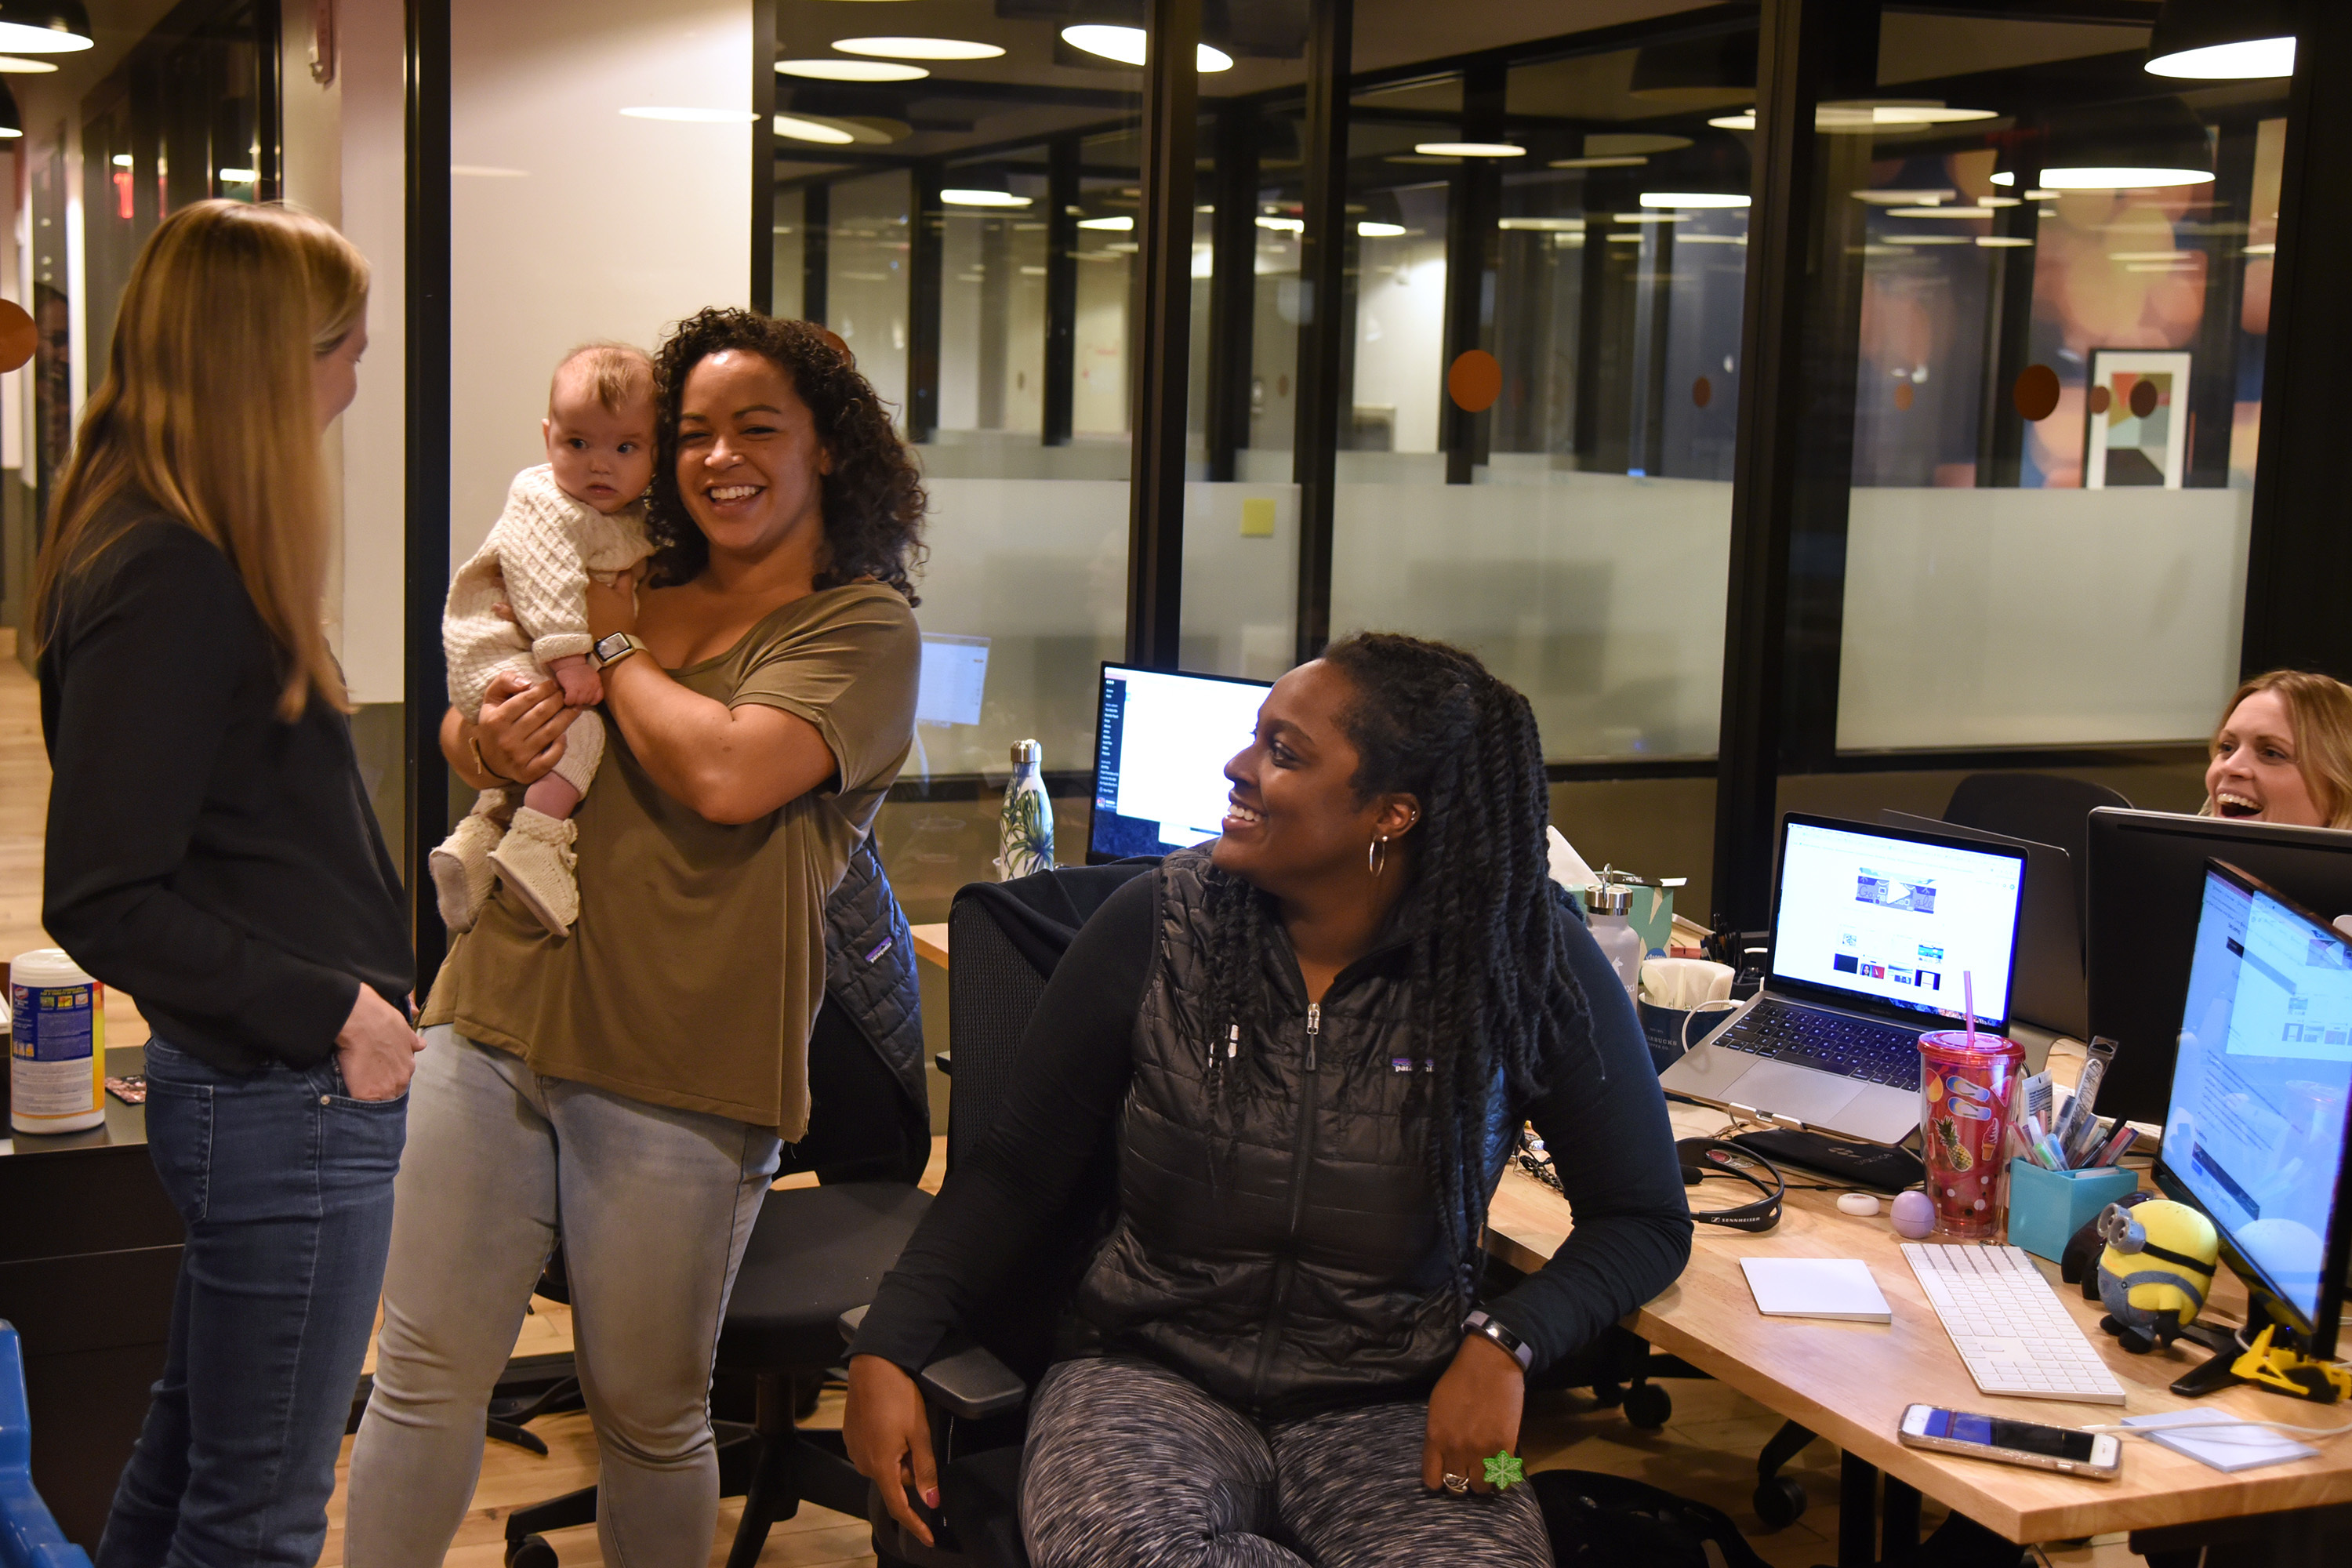 Tech startup founder and mom Emily Foote (left) with daughter Hazel Marie Williams, 4 months, held by Ashley Karpeh during work at Practice XYZ, Inc. December 21, 2017. Seated is K'Shelle Waller. At far right , partially hidden is Alyson Emmett.